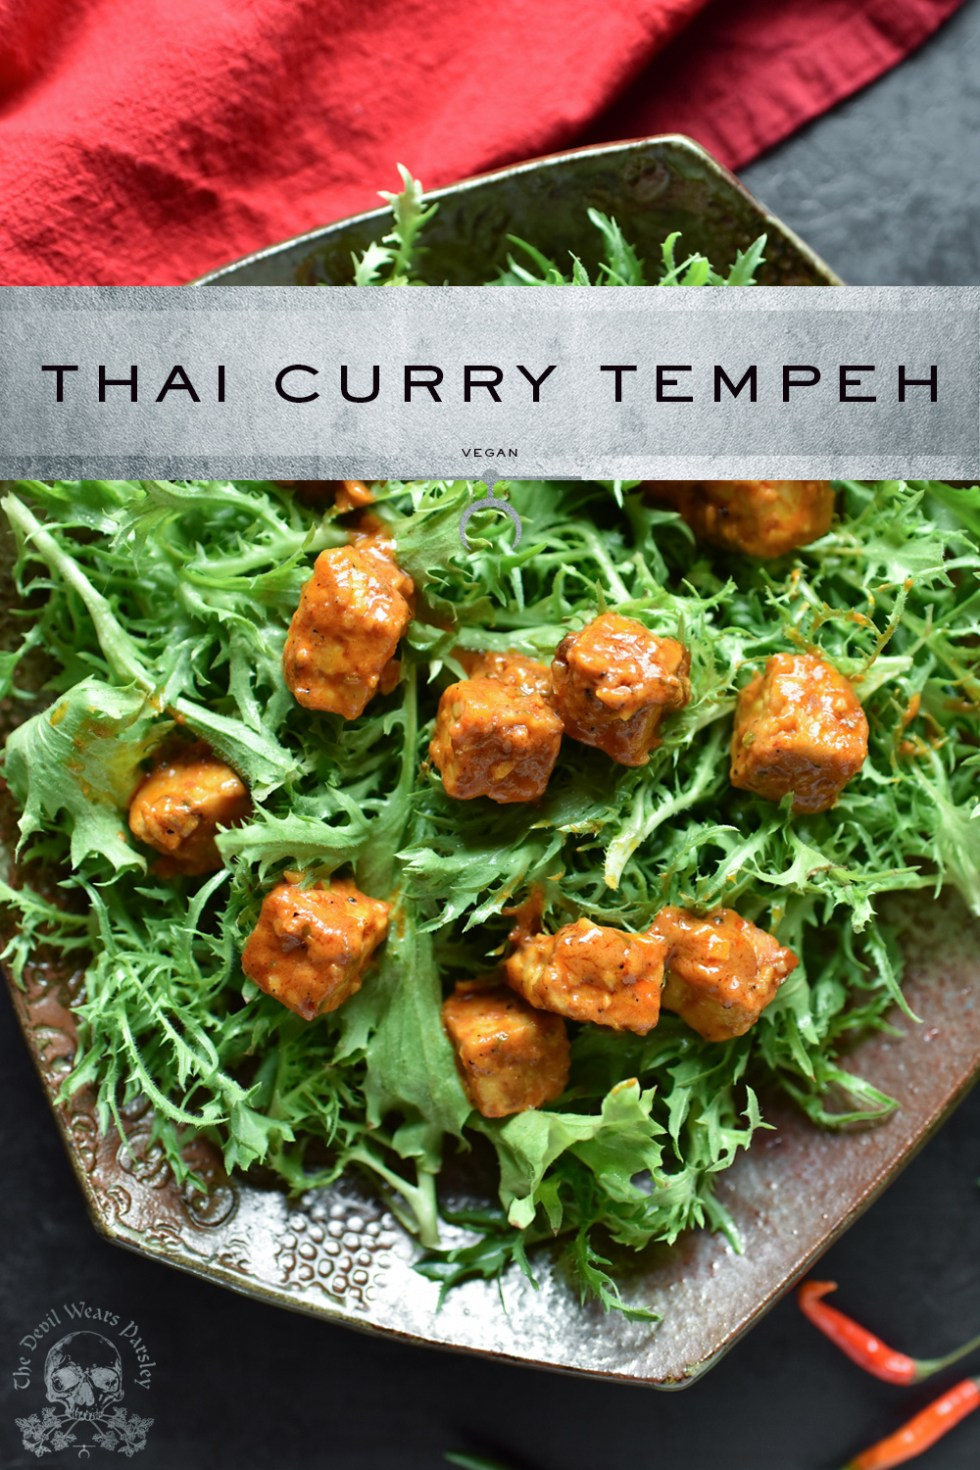 Spicy Thai Curry meets Tempeh in an epic flavor bomb!